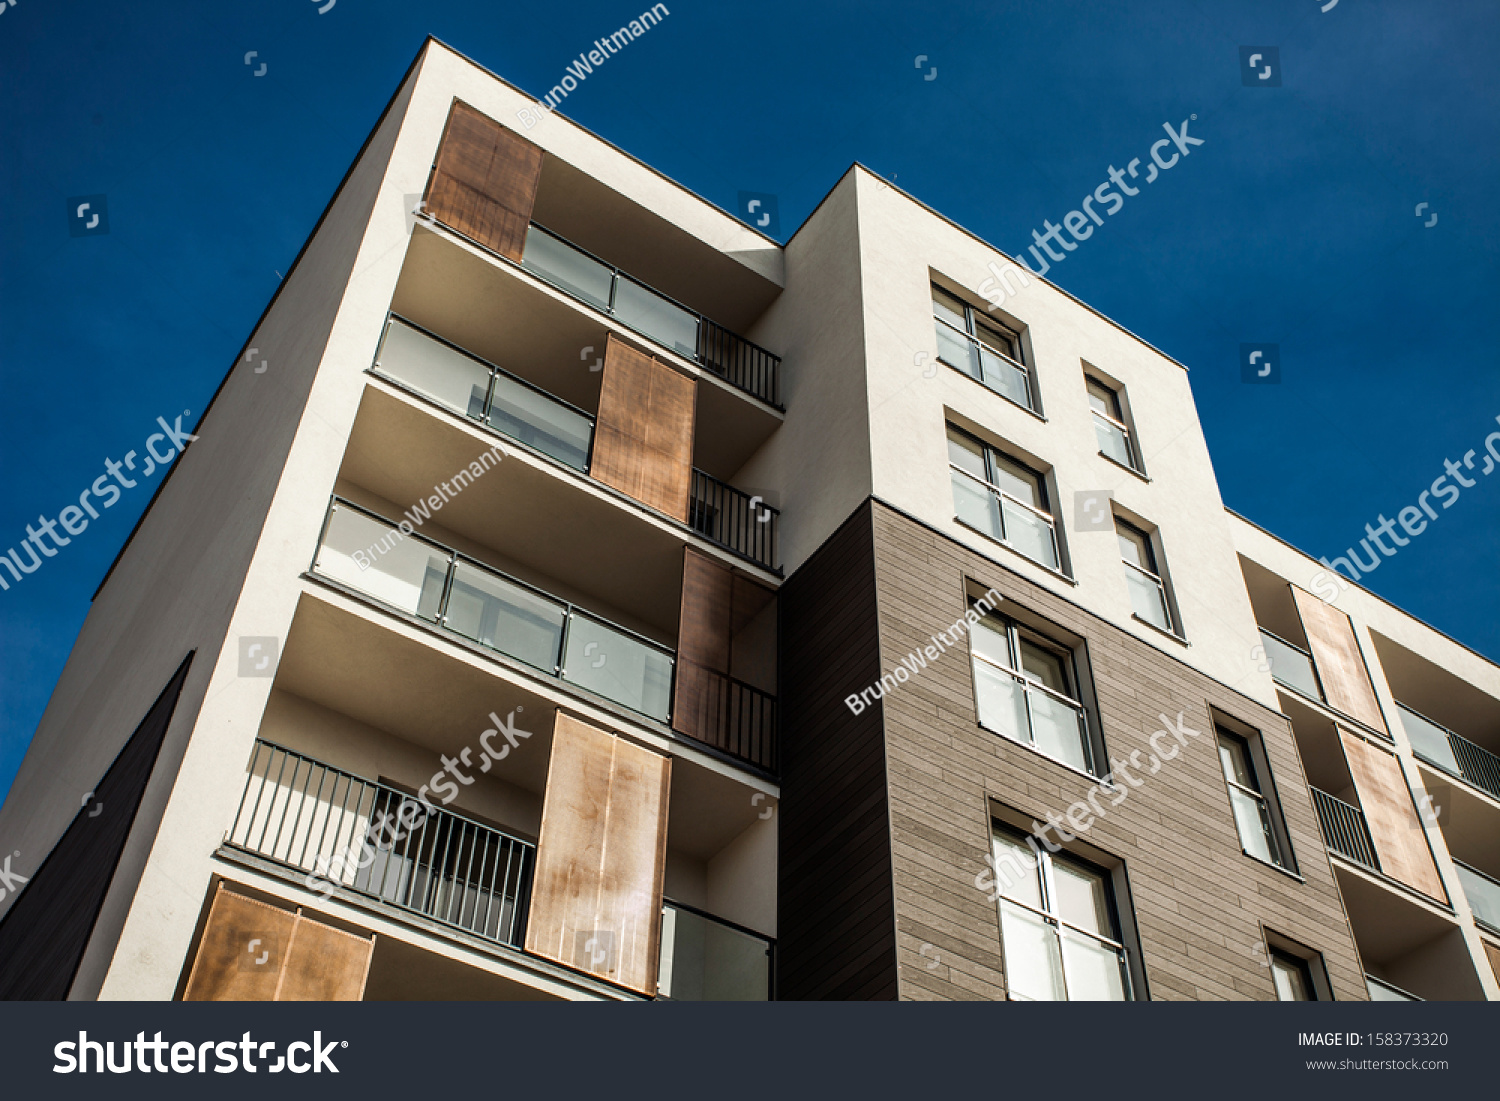 Residental building on sky background exterior stock photo for Exterior background